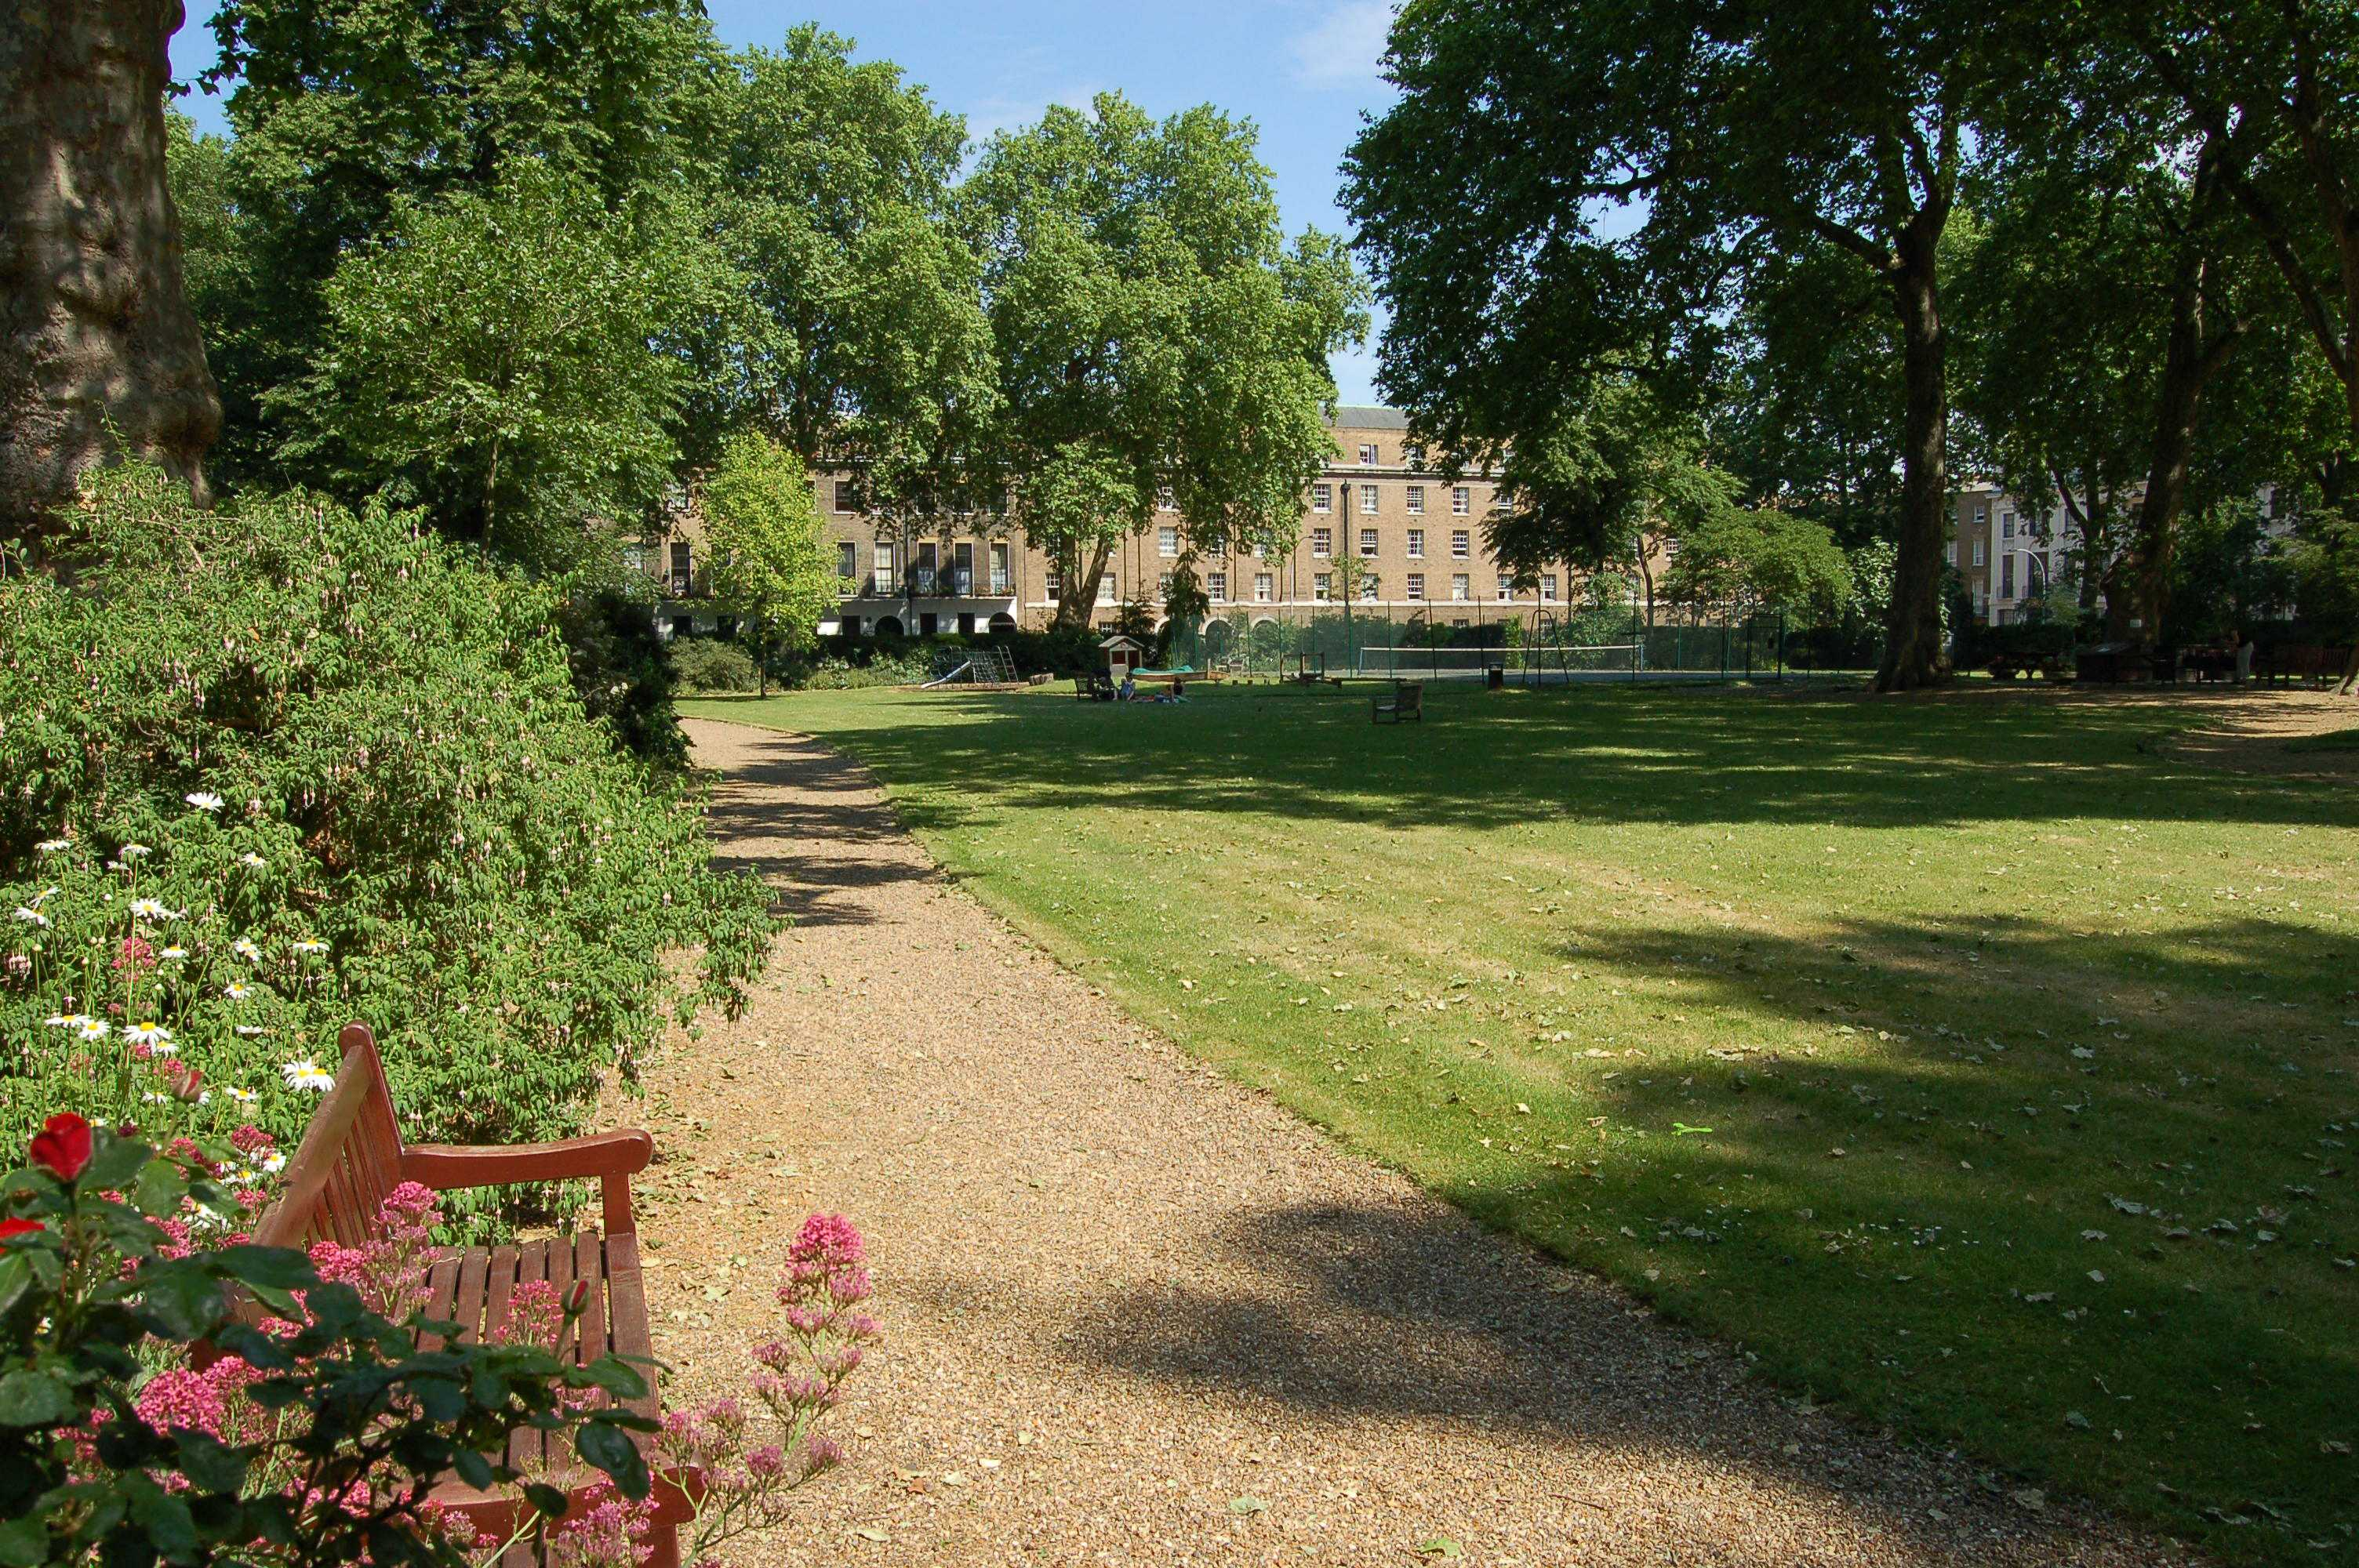 Garden S Mecklenburgh Square | Bloomsbury Squares & Gardens